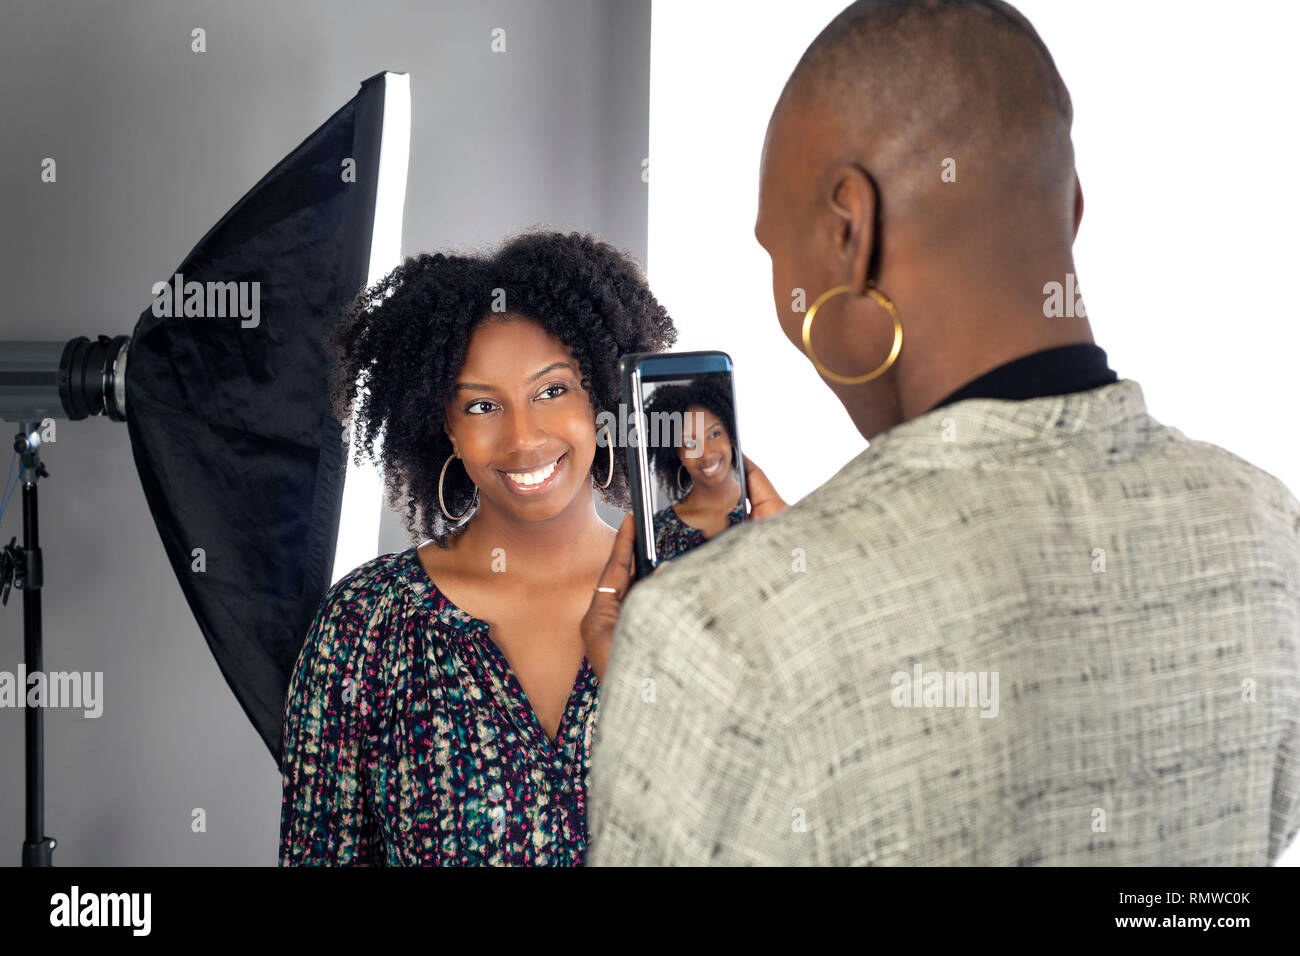 Black female actress doing a self tape audition via cell phone camera in a  studio while